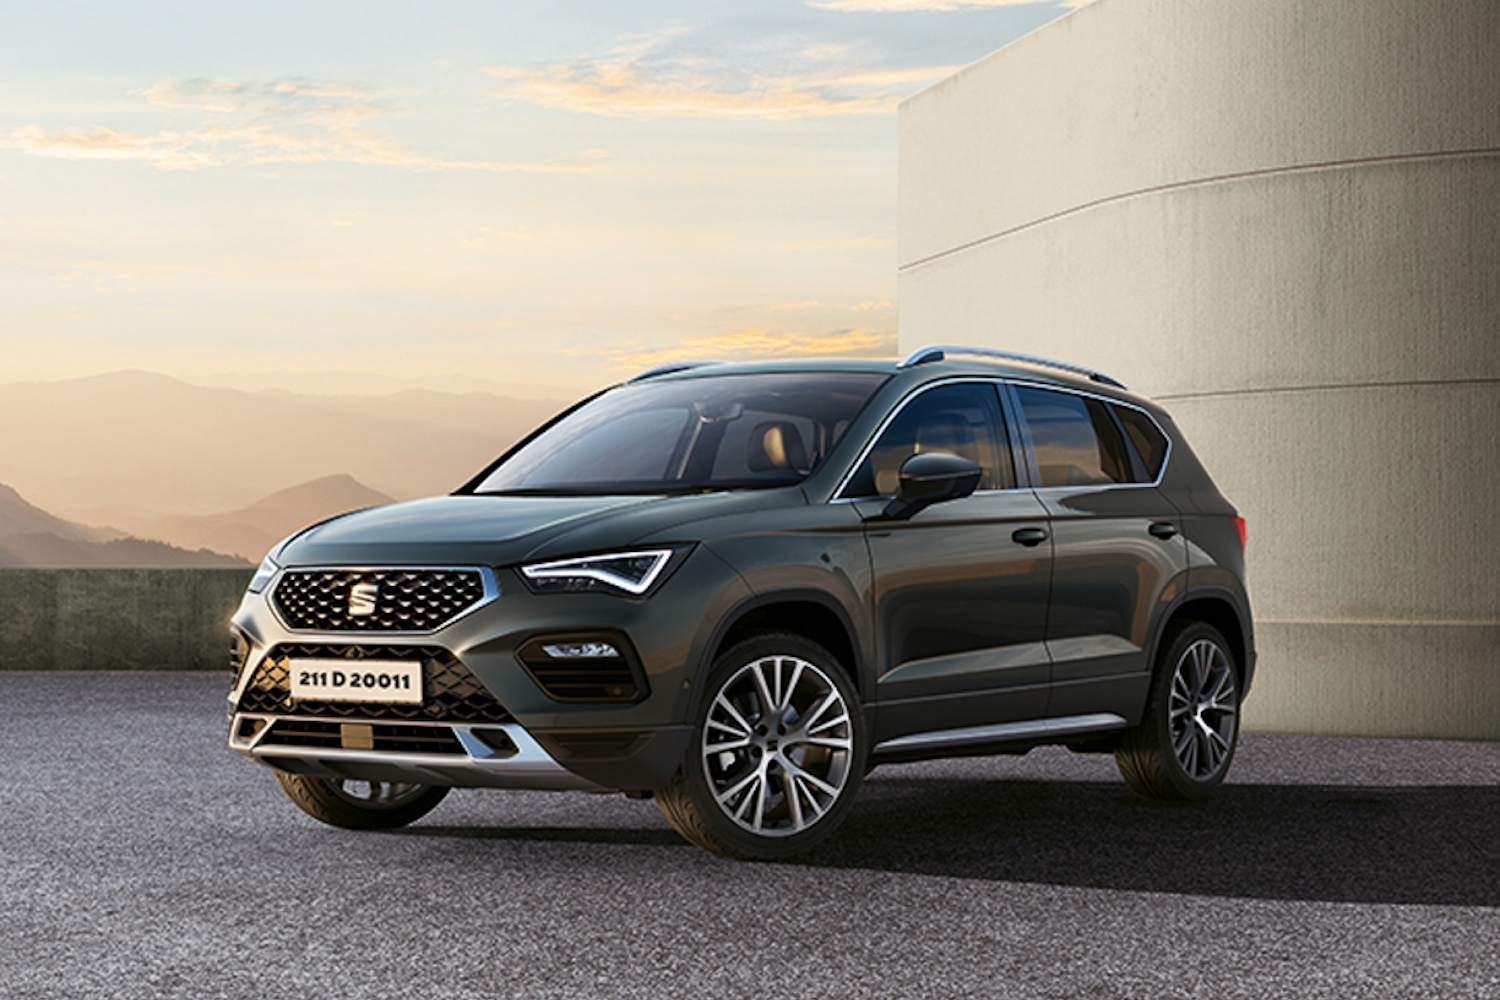 Car News | SEAT Ireland announces 211 offers | CompleteCar.ie